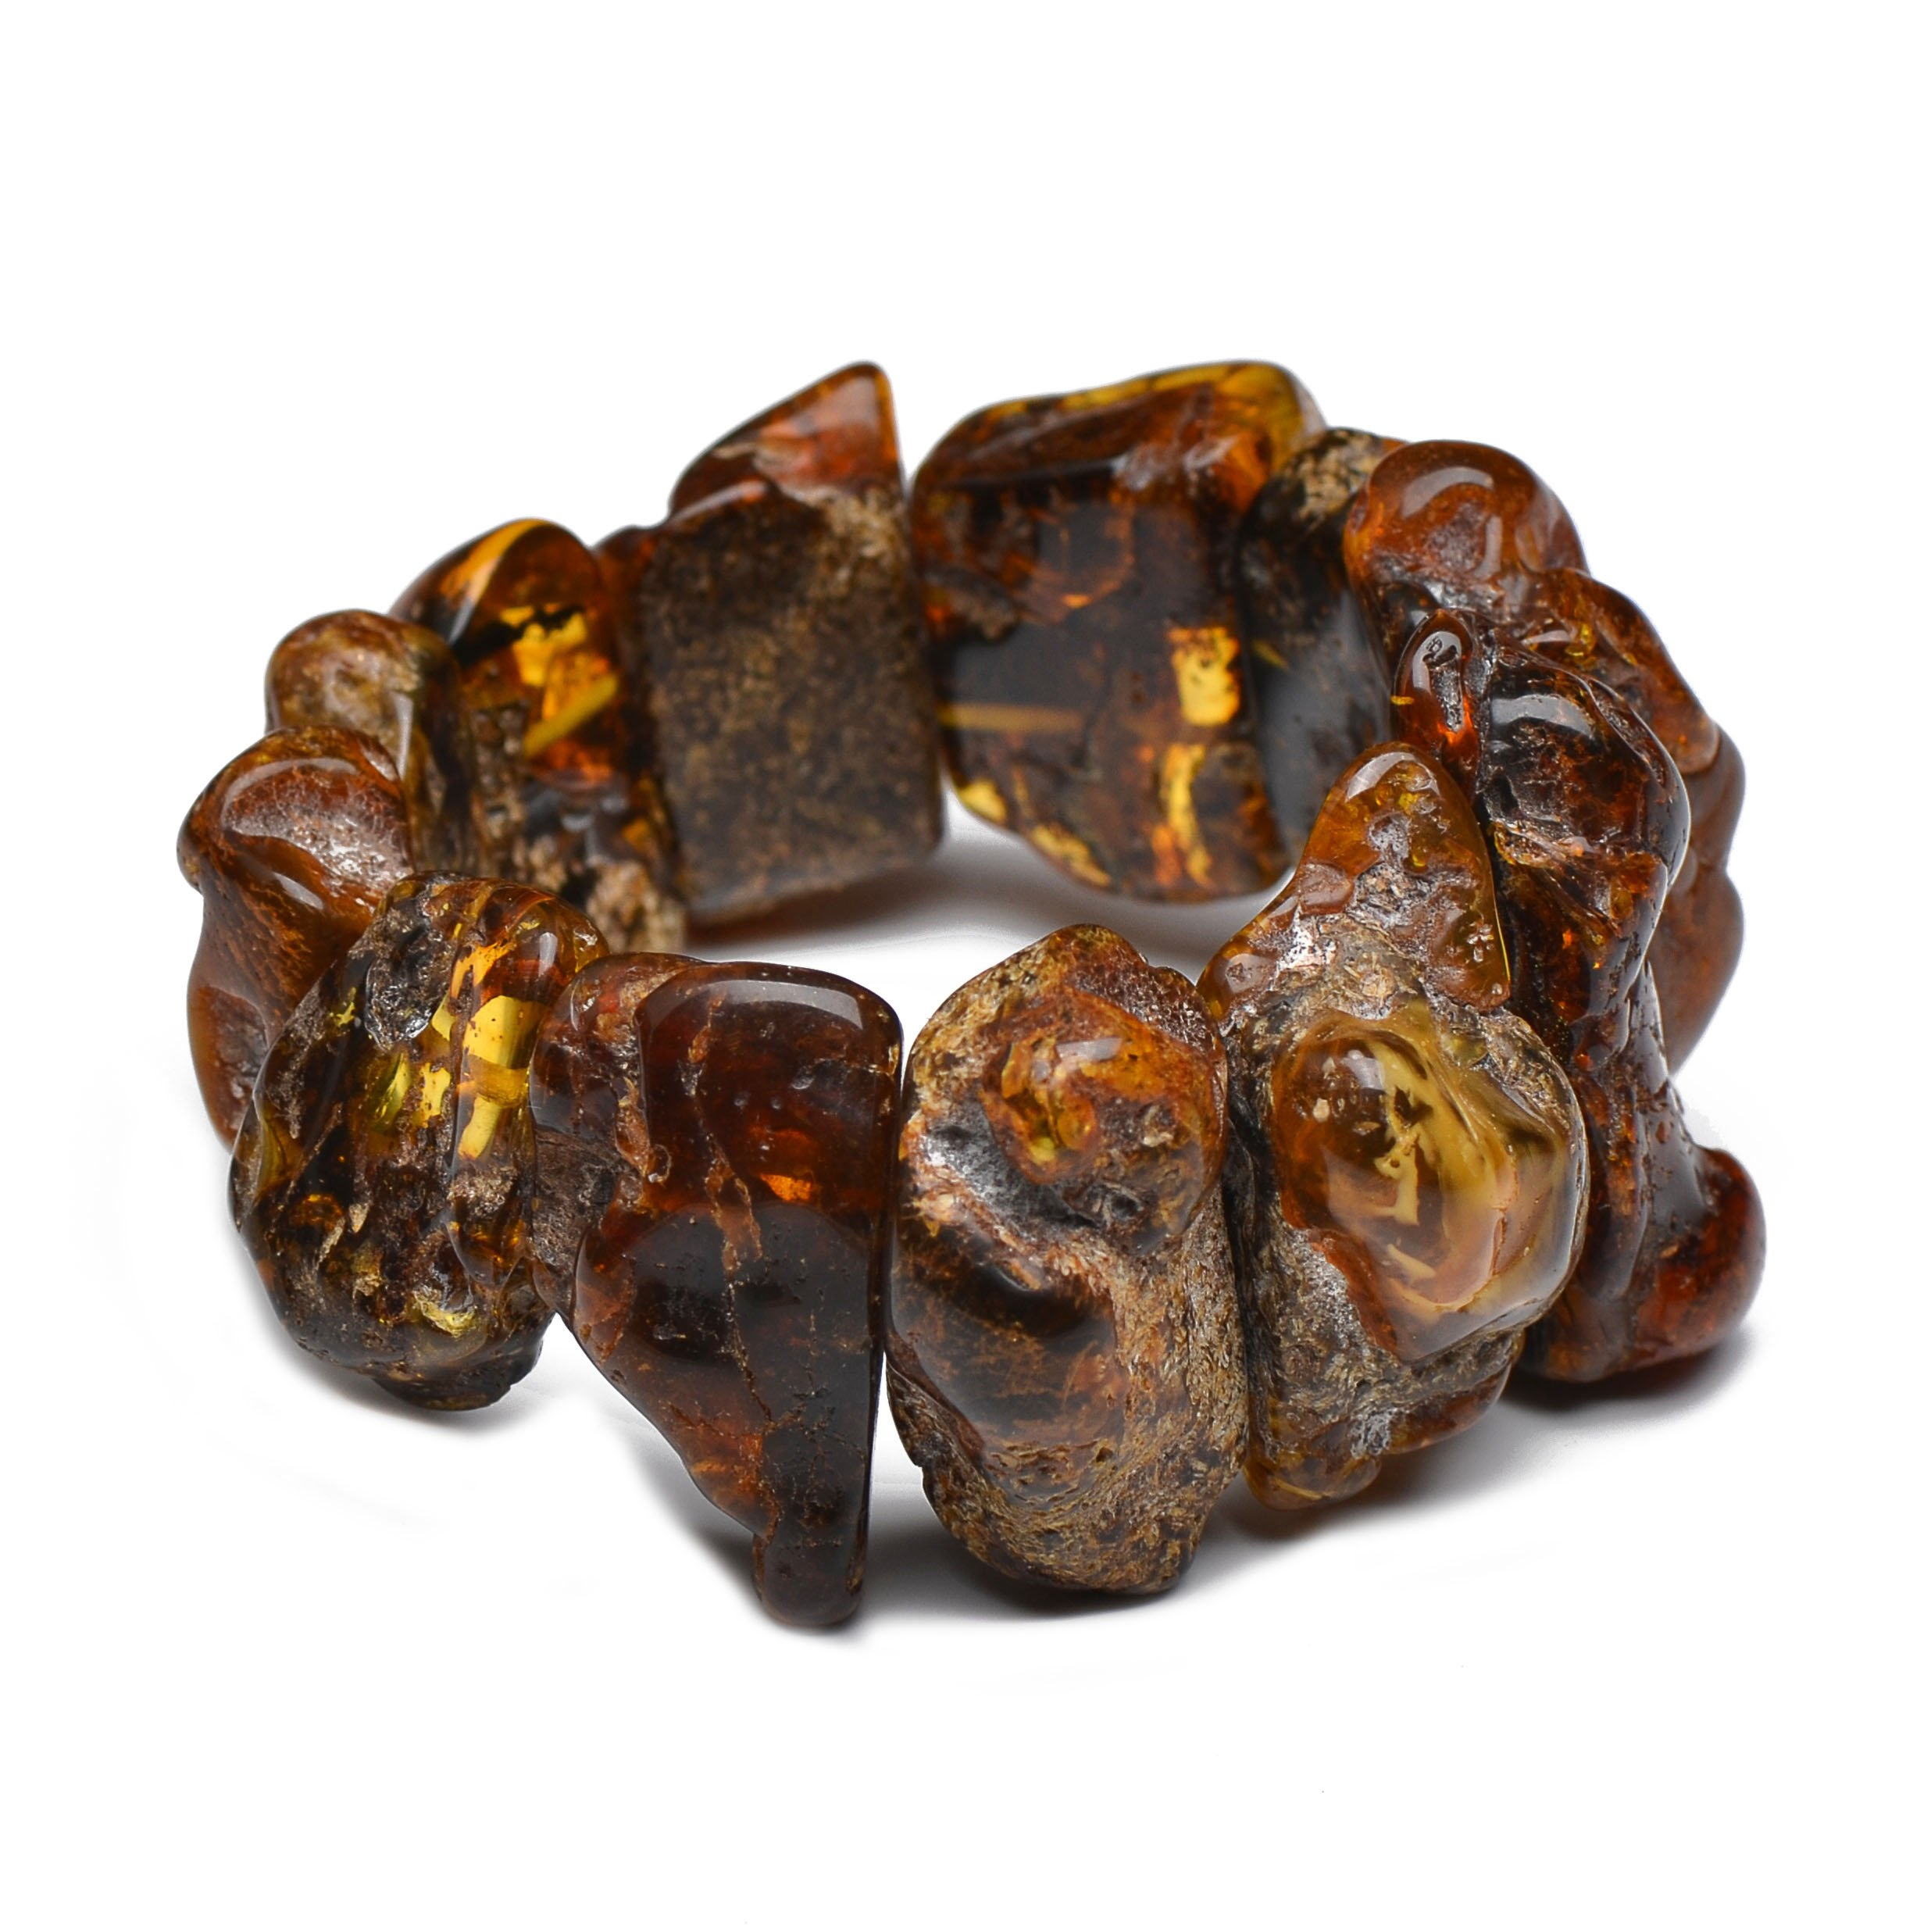 Massive and Exclusive Amber Bracelet - Certified Vintage Amber Bracelet - Unique Amber Pieces - One Item Only by Genuine Amber (Image #3)